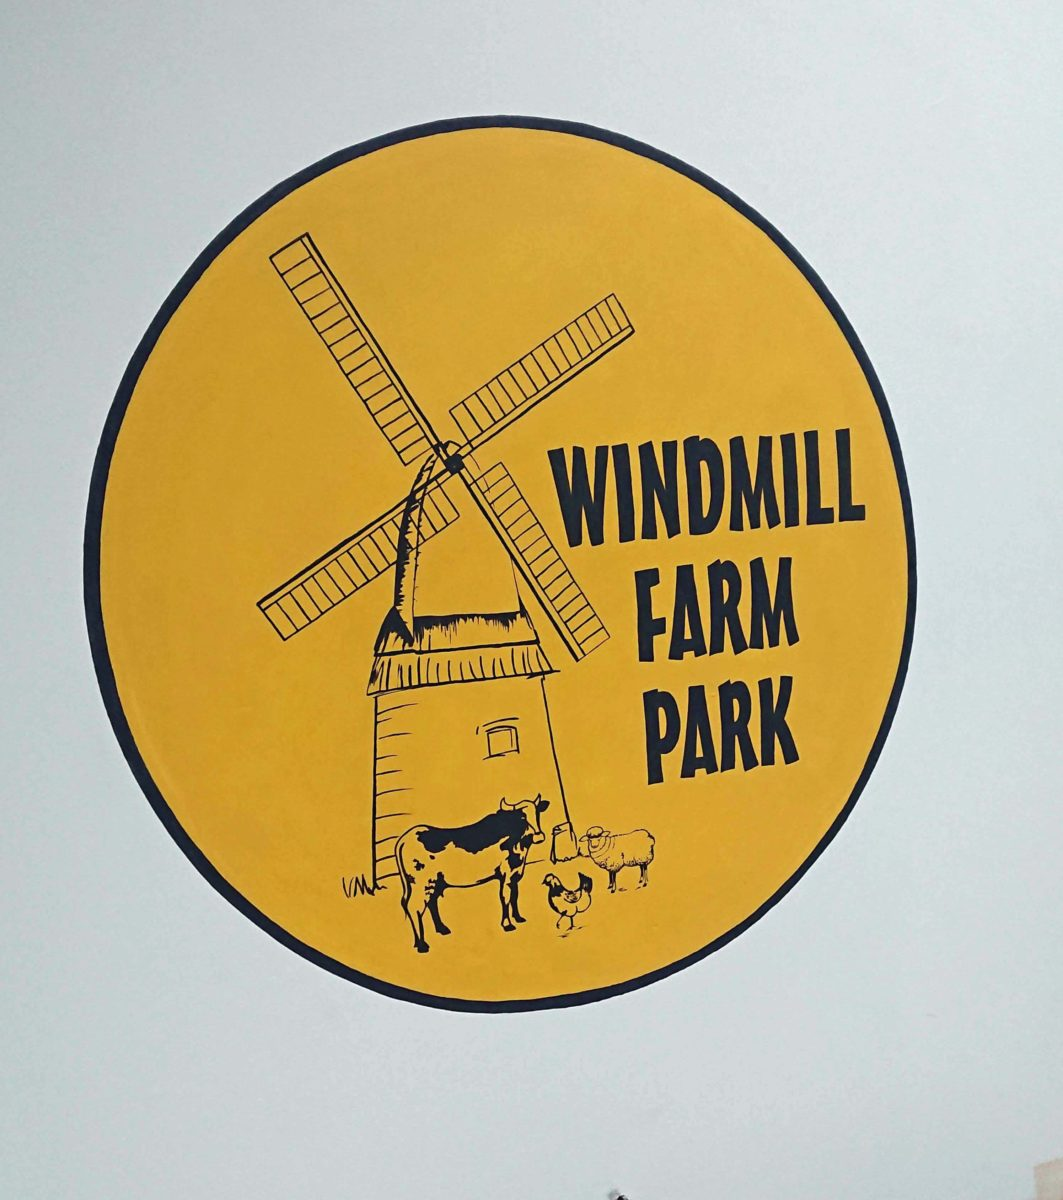 hand painted sign for Windmill Farm